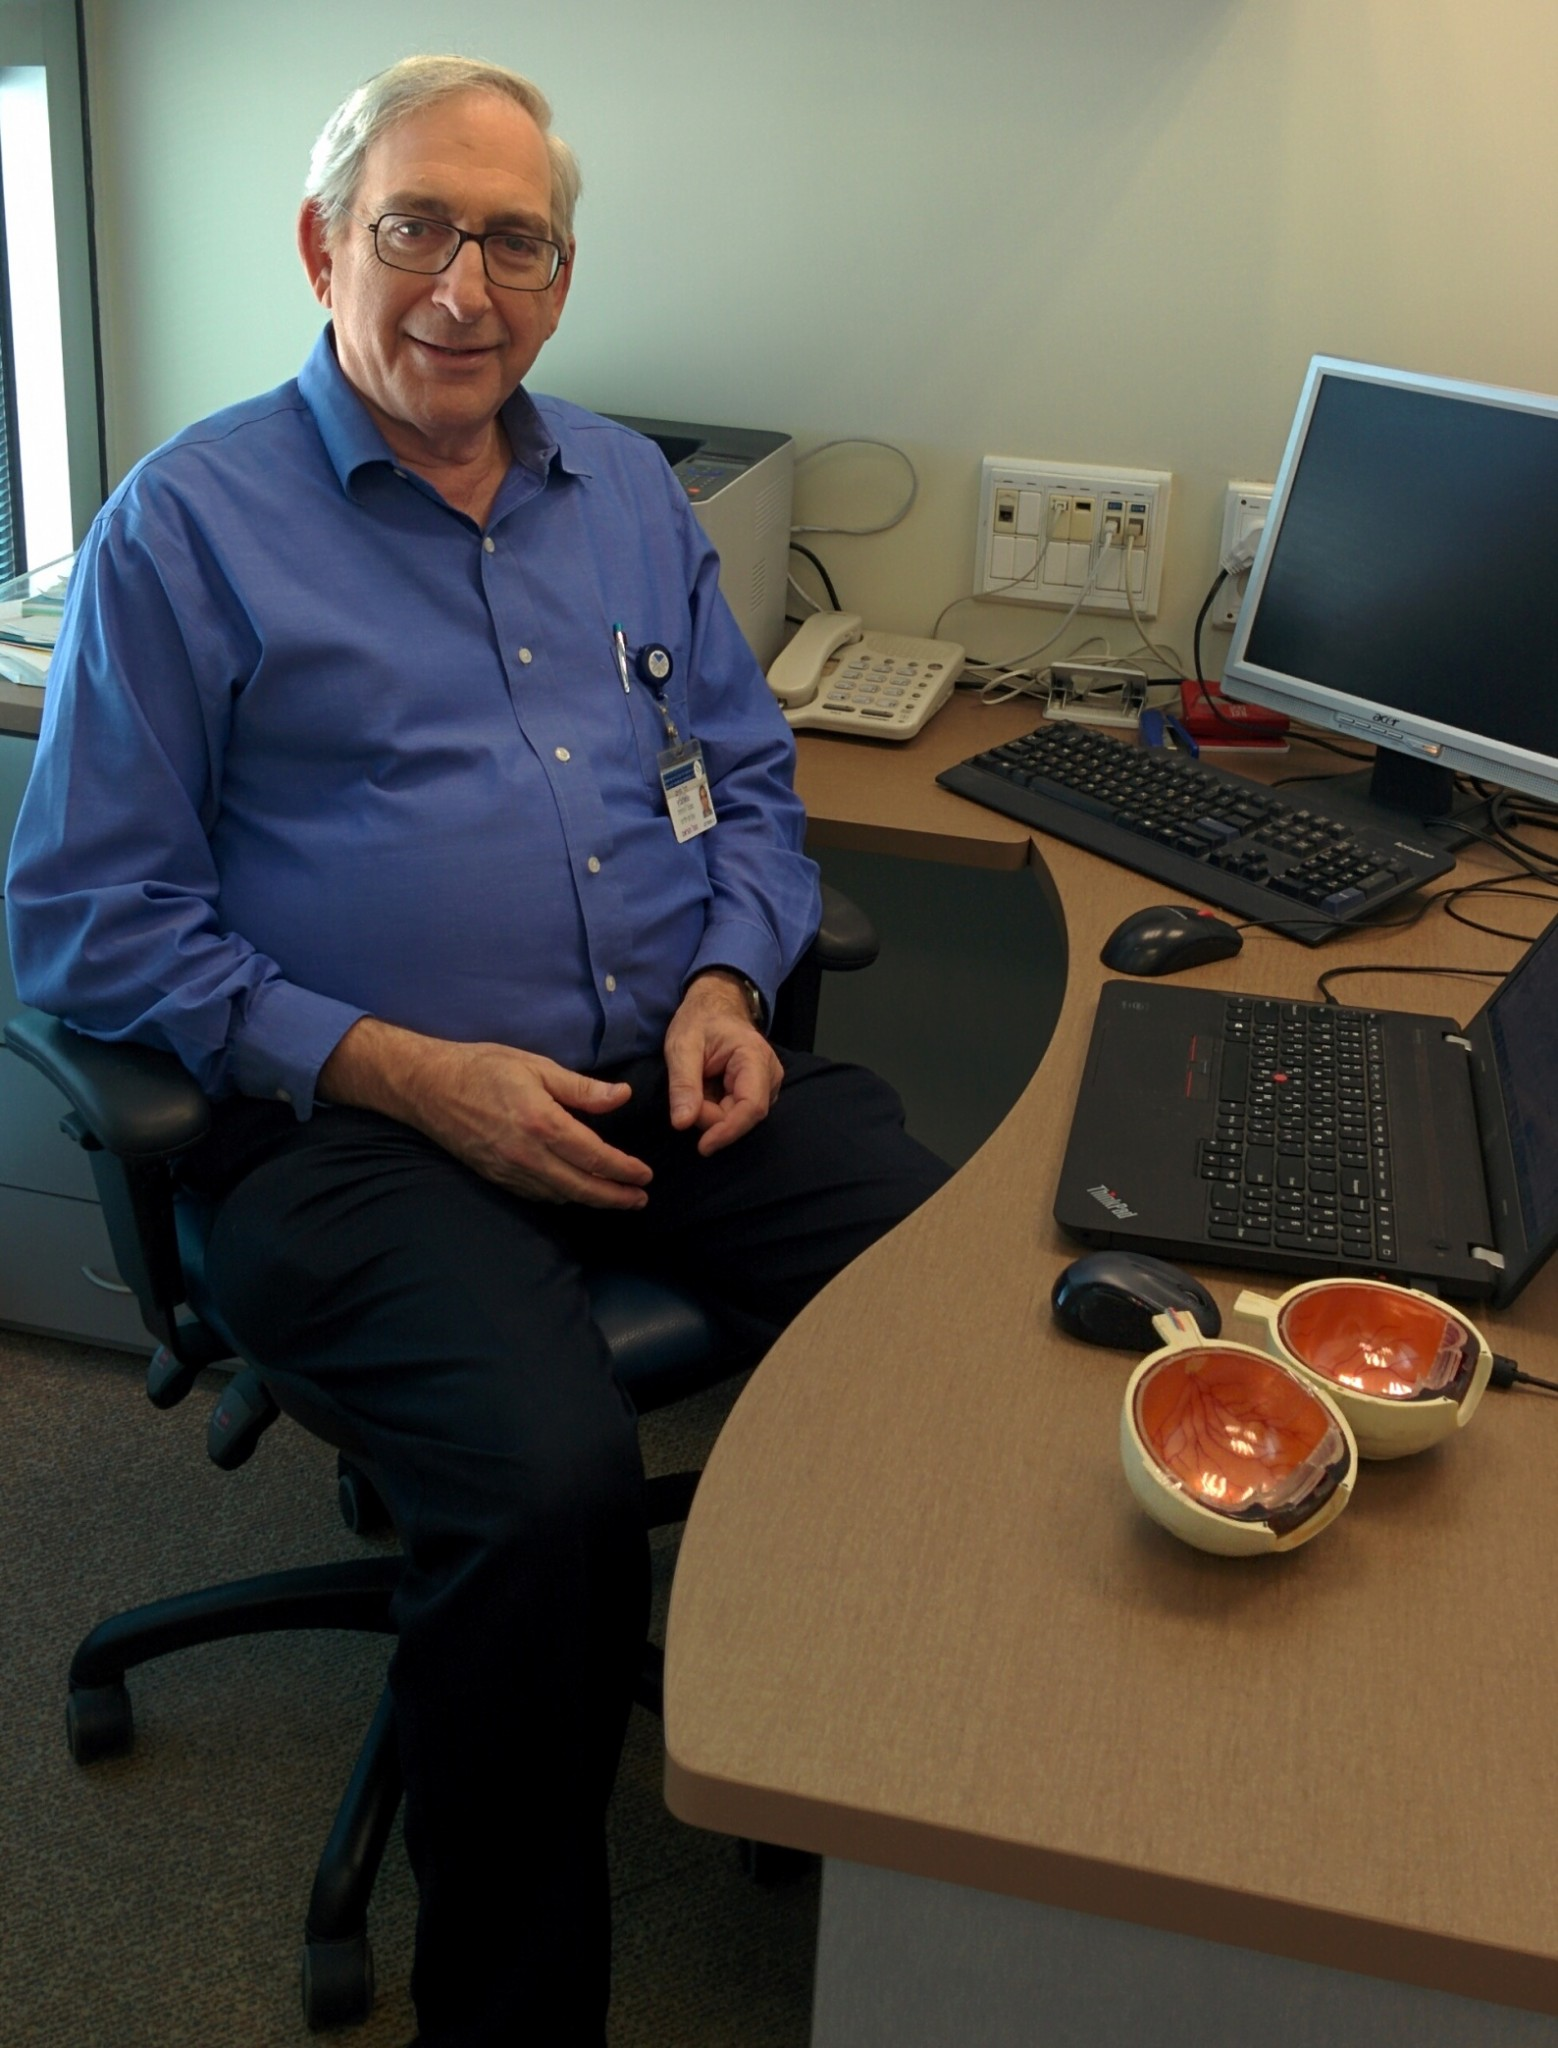 Dr. Chaim Stolovitch in his office at Tel Aviv Medical Center. Photo by Abigail Klein Leichman